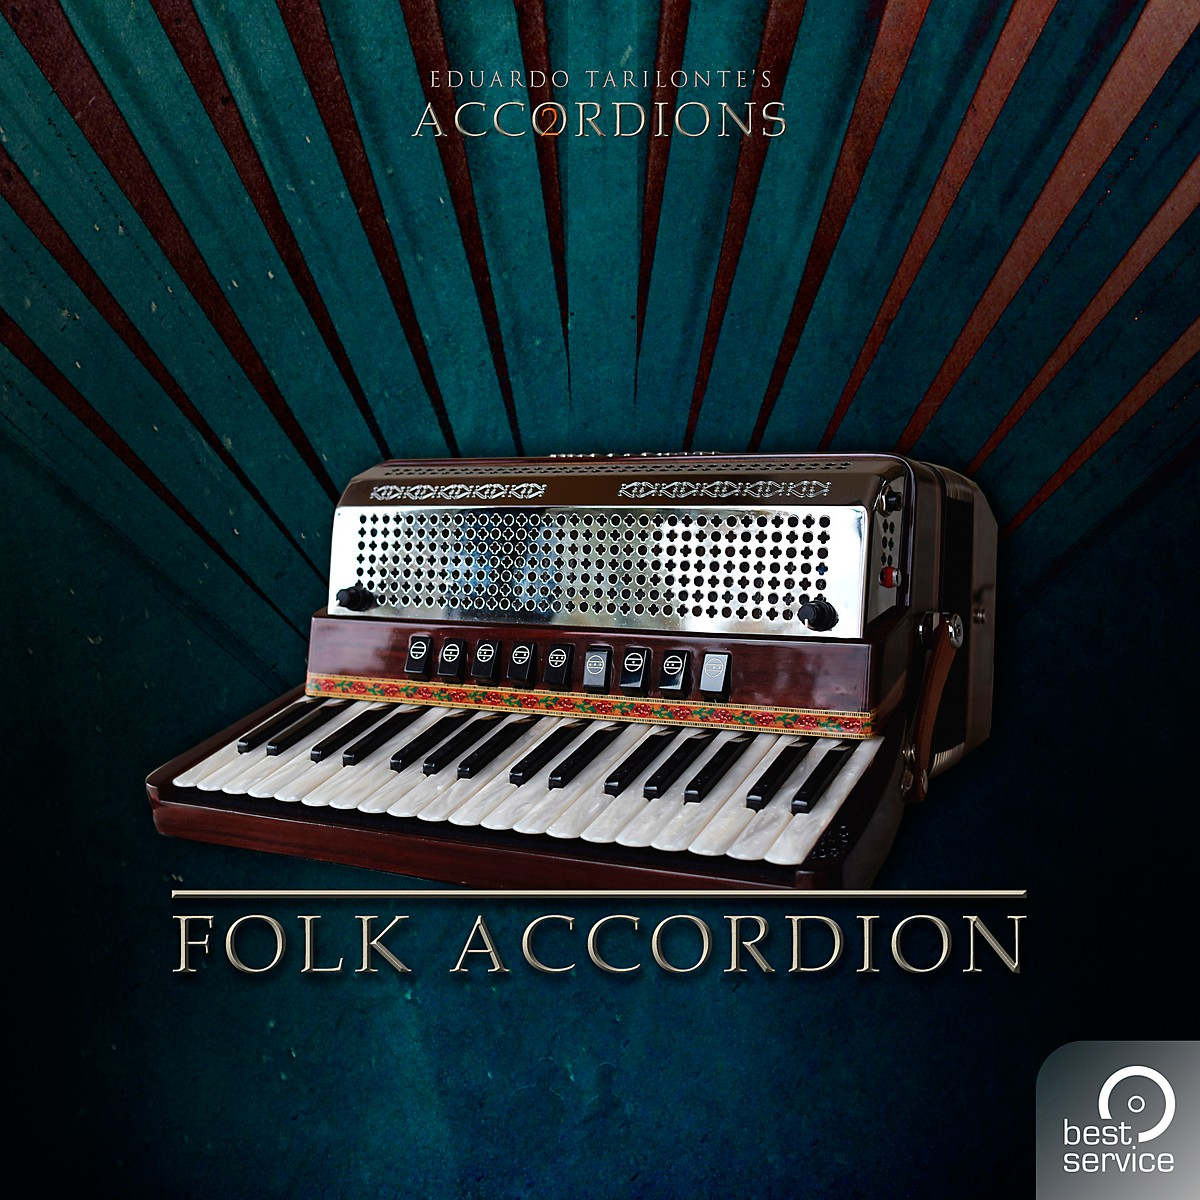 Best Service Accordions 2 - Single Folk Accordion